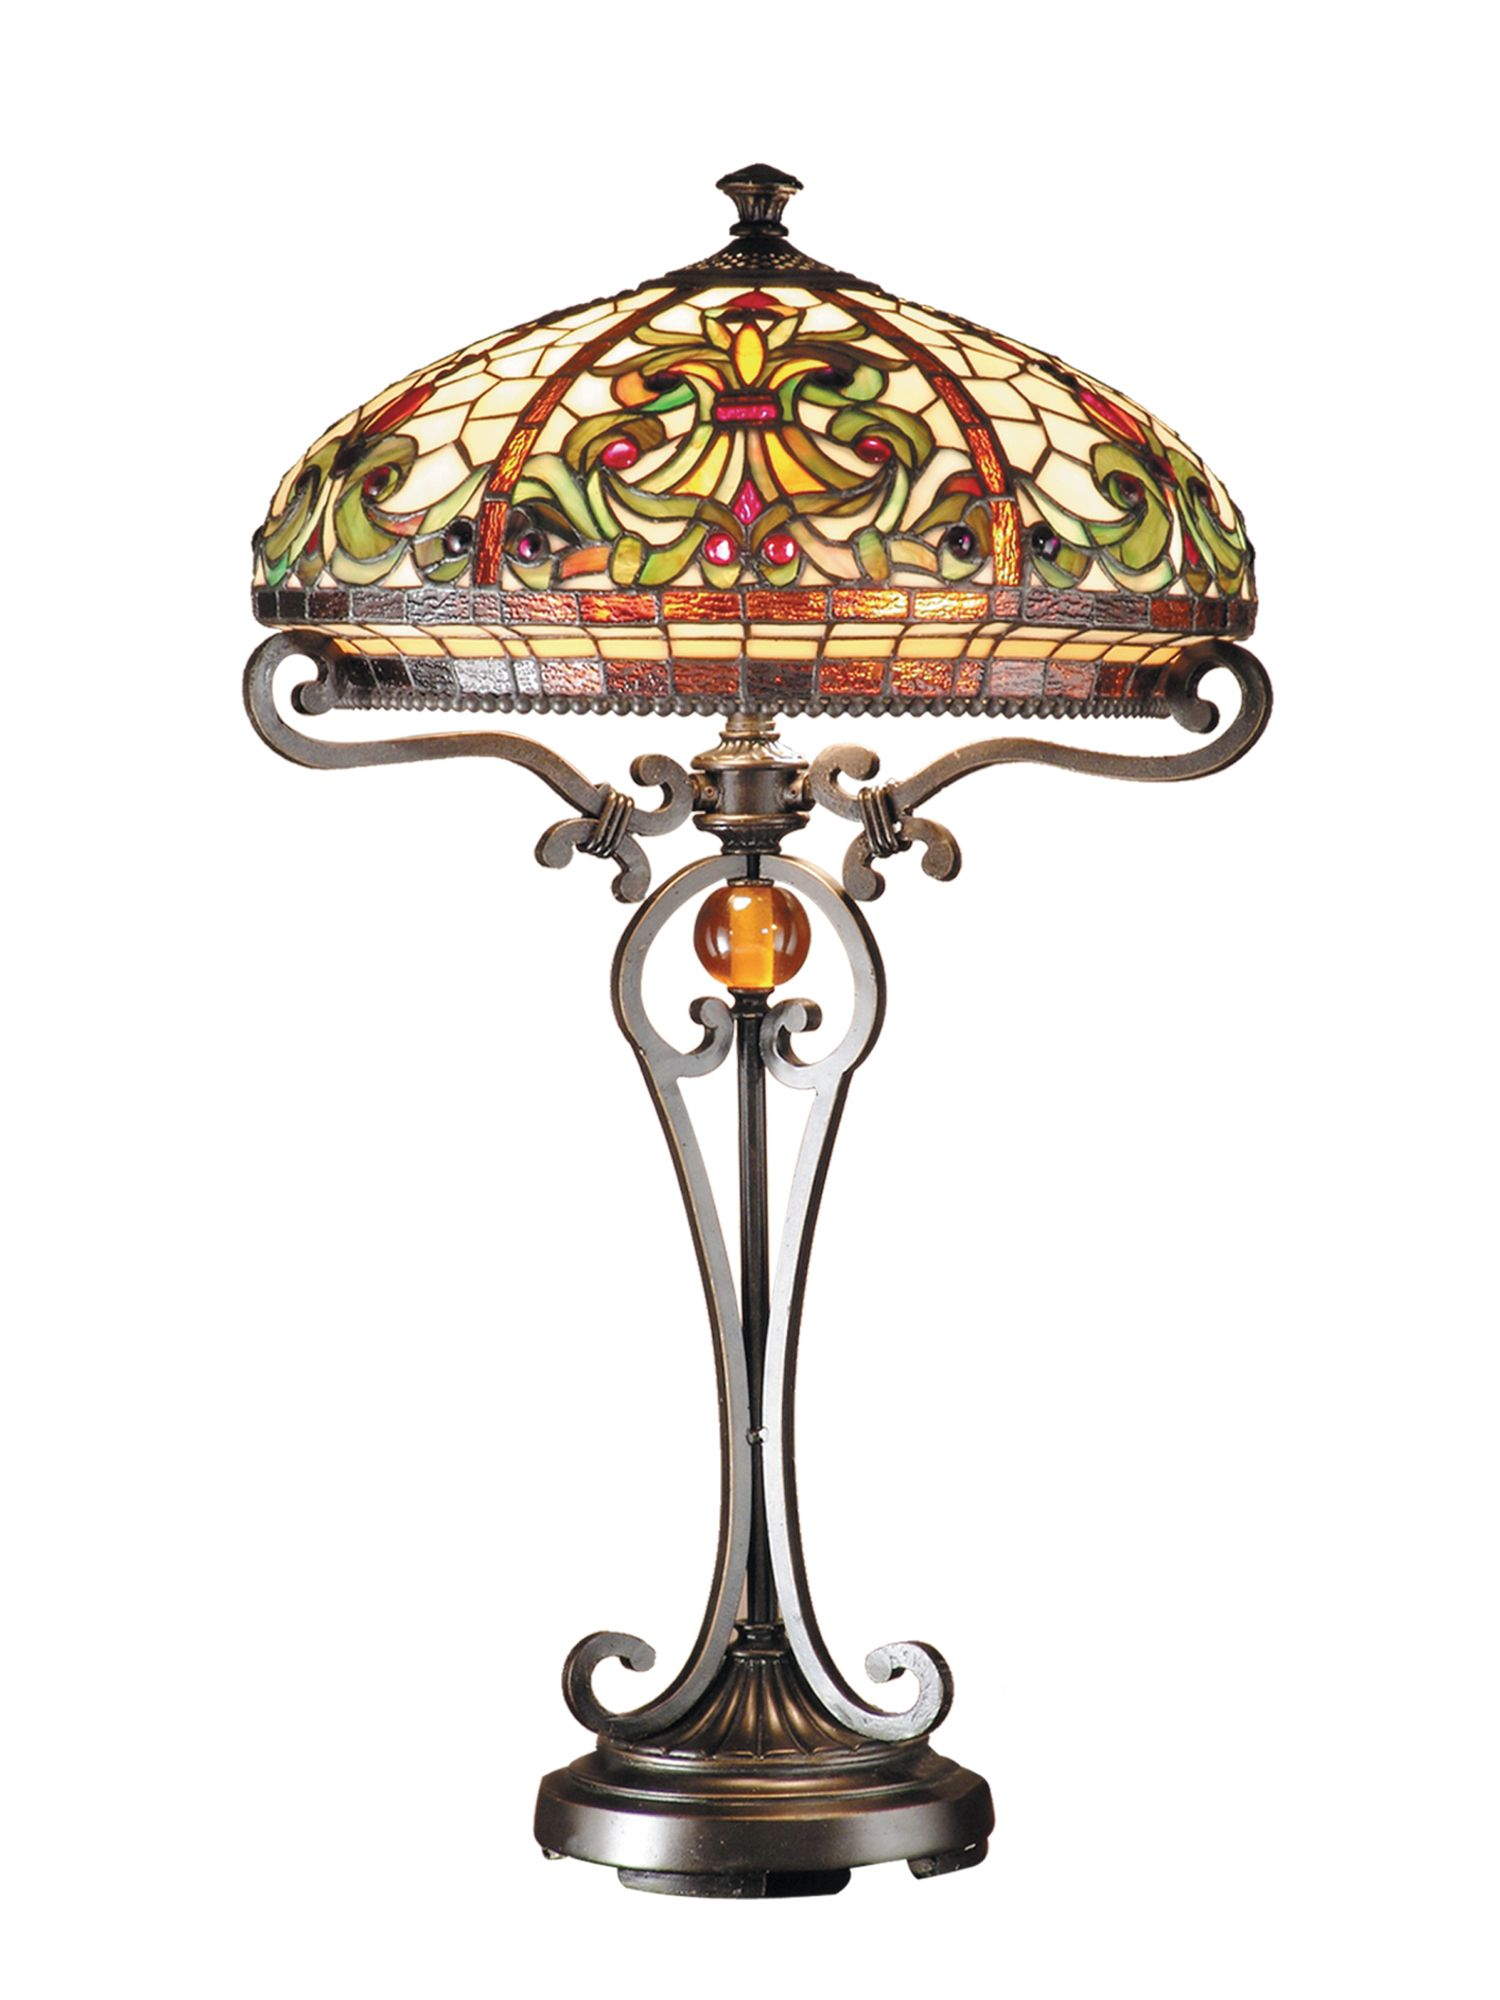 Dale Tiffany Antiques Roadshow Boehme Series Tiffany Table Lamp Stained Glass Table Lamps Tiffany Table Lamps Antique Lamp Shades